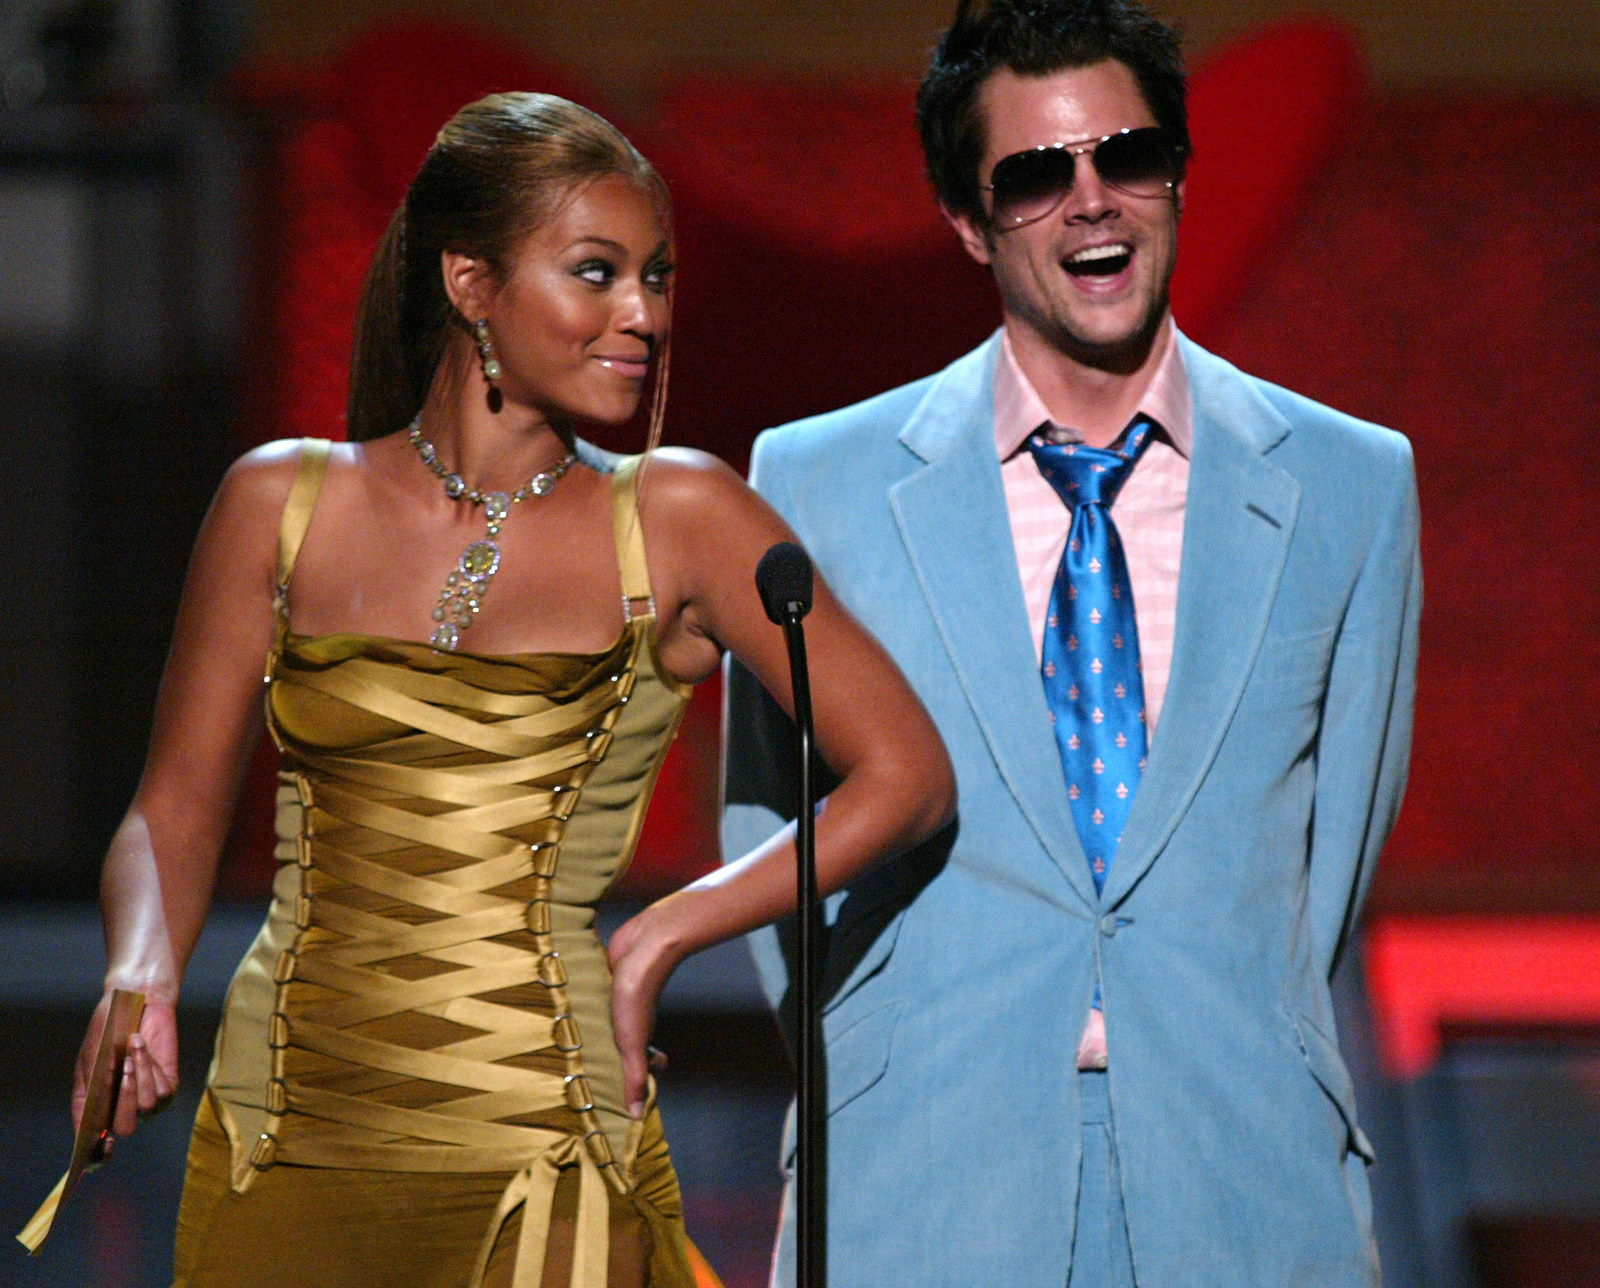 Having a laugh with brutal ball-beater, Johnny Knoxville.